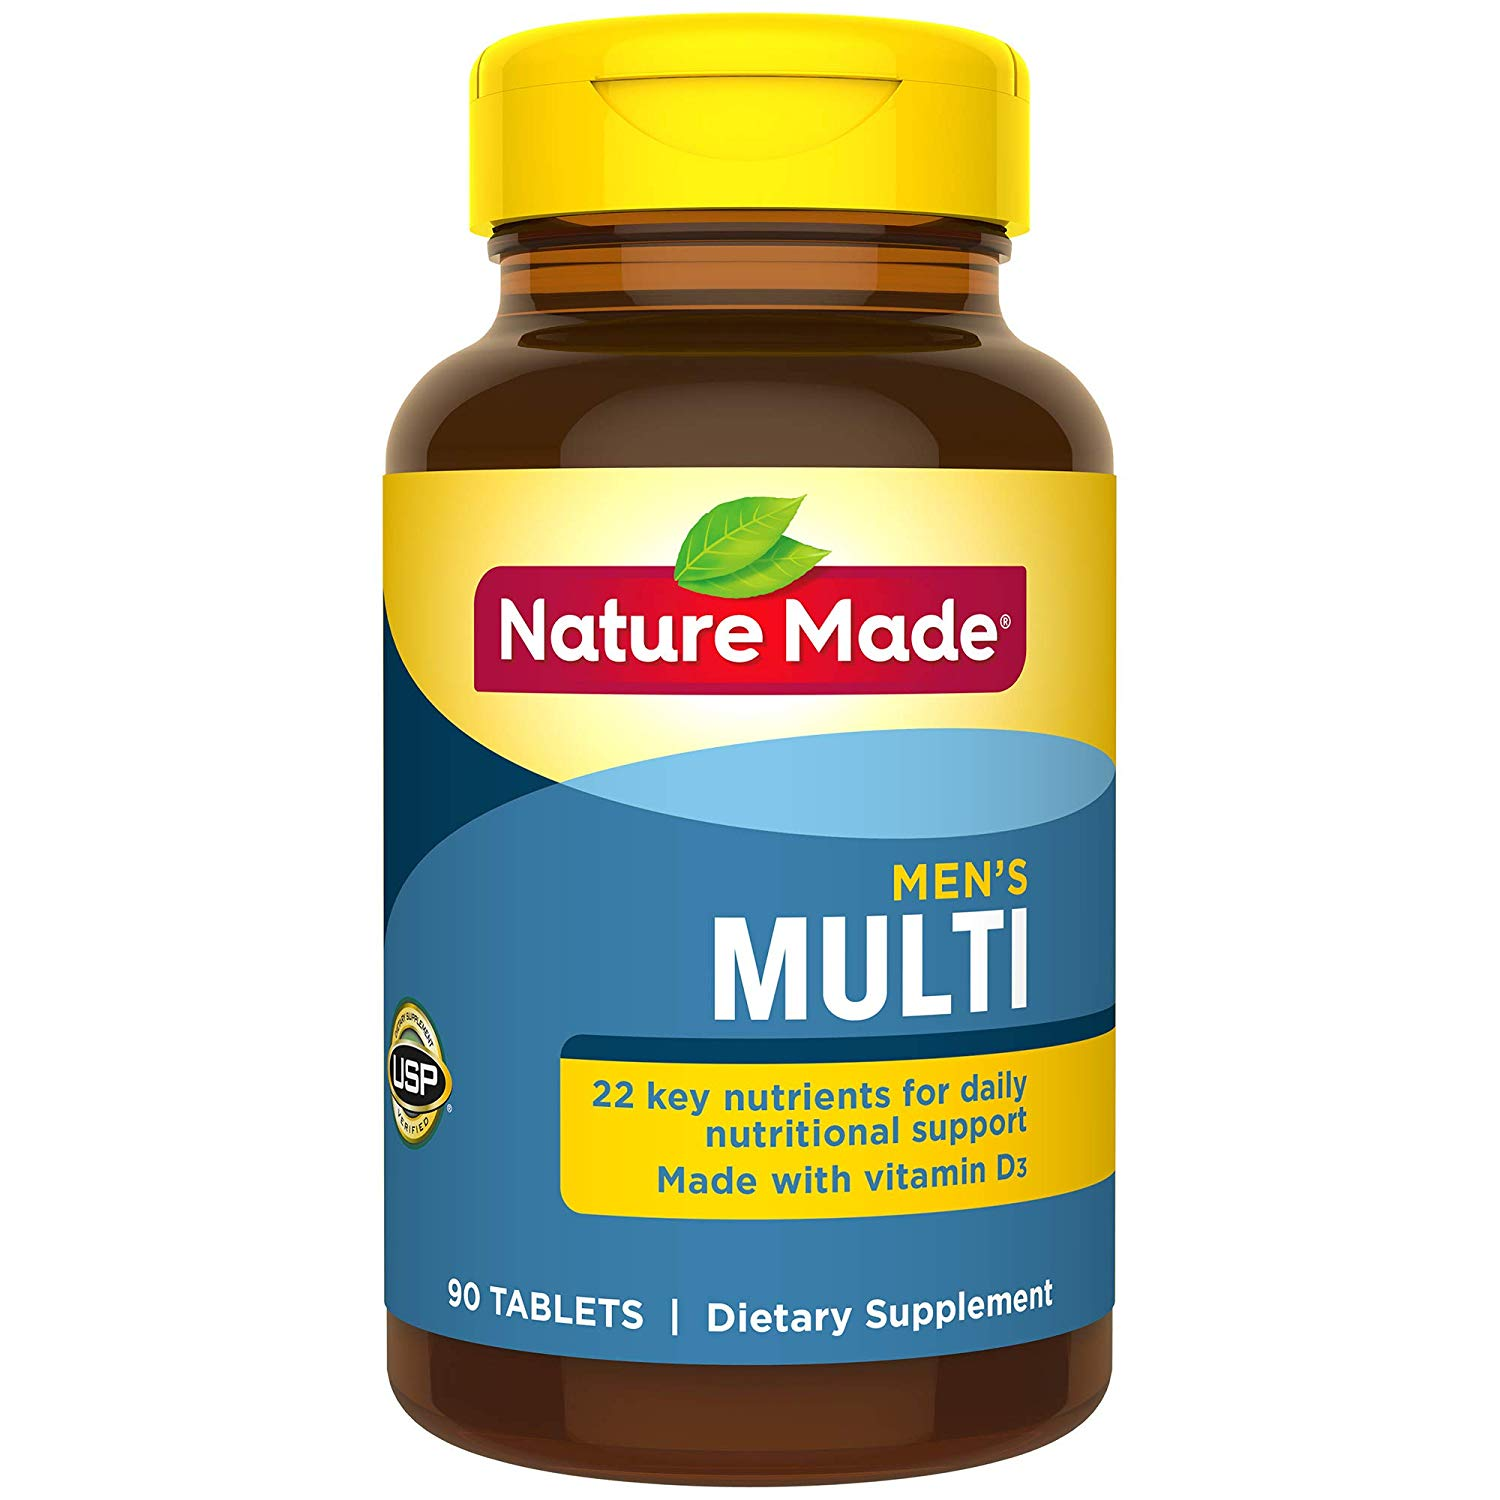 Nature Made Men's Multivitamin